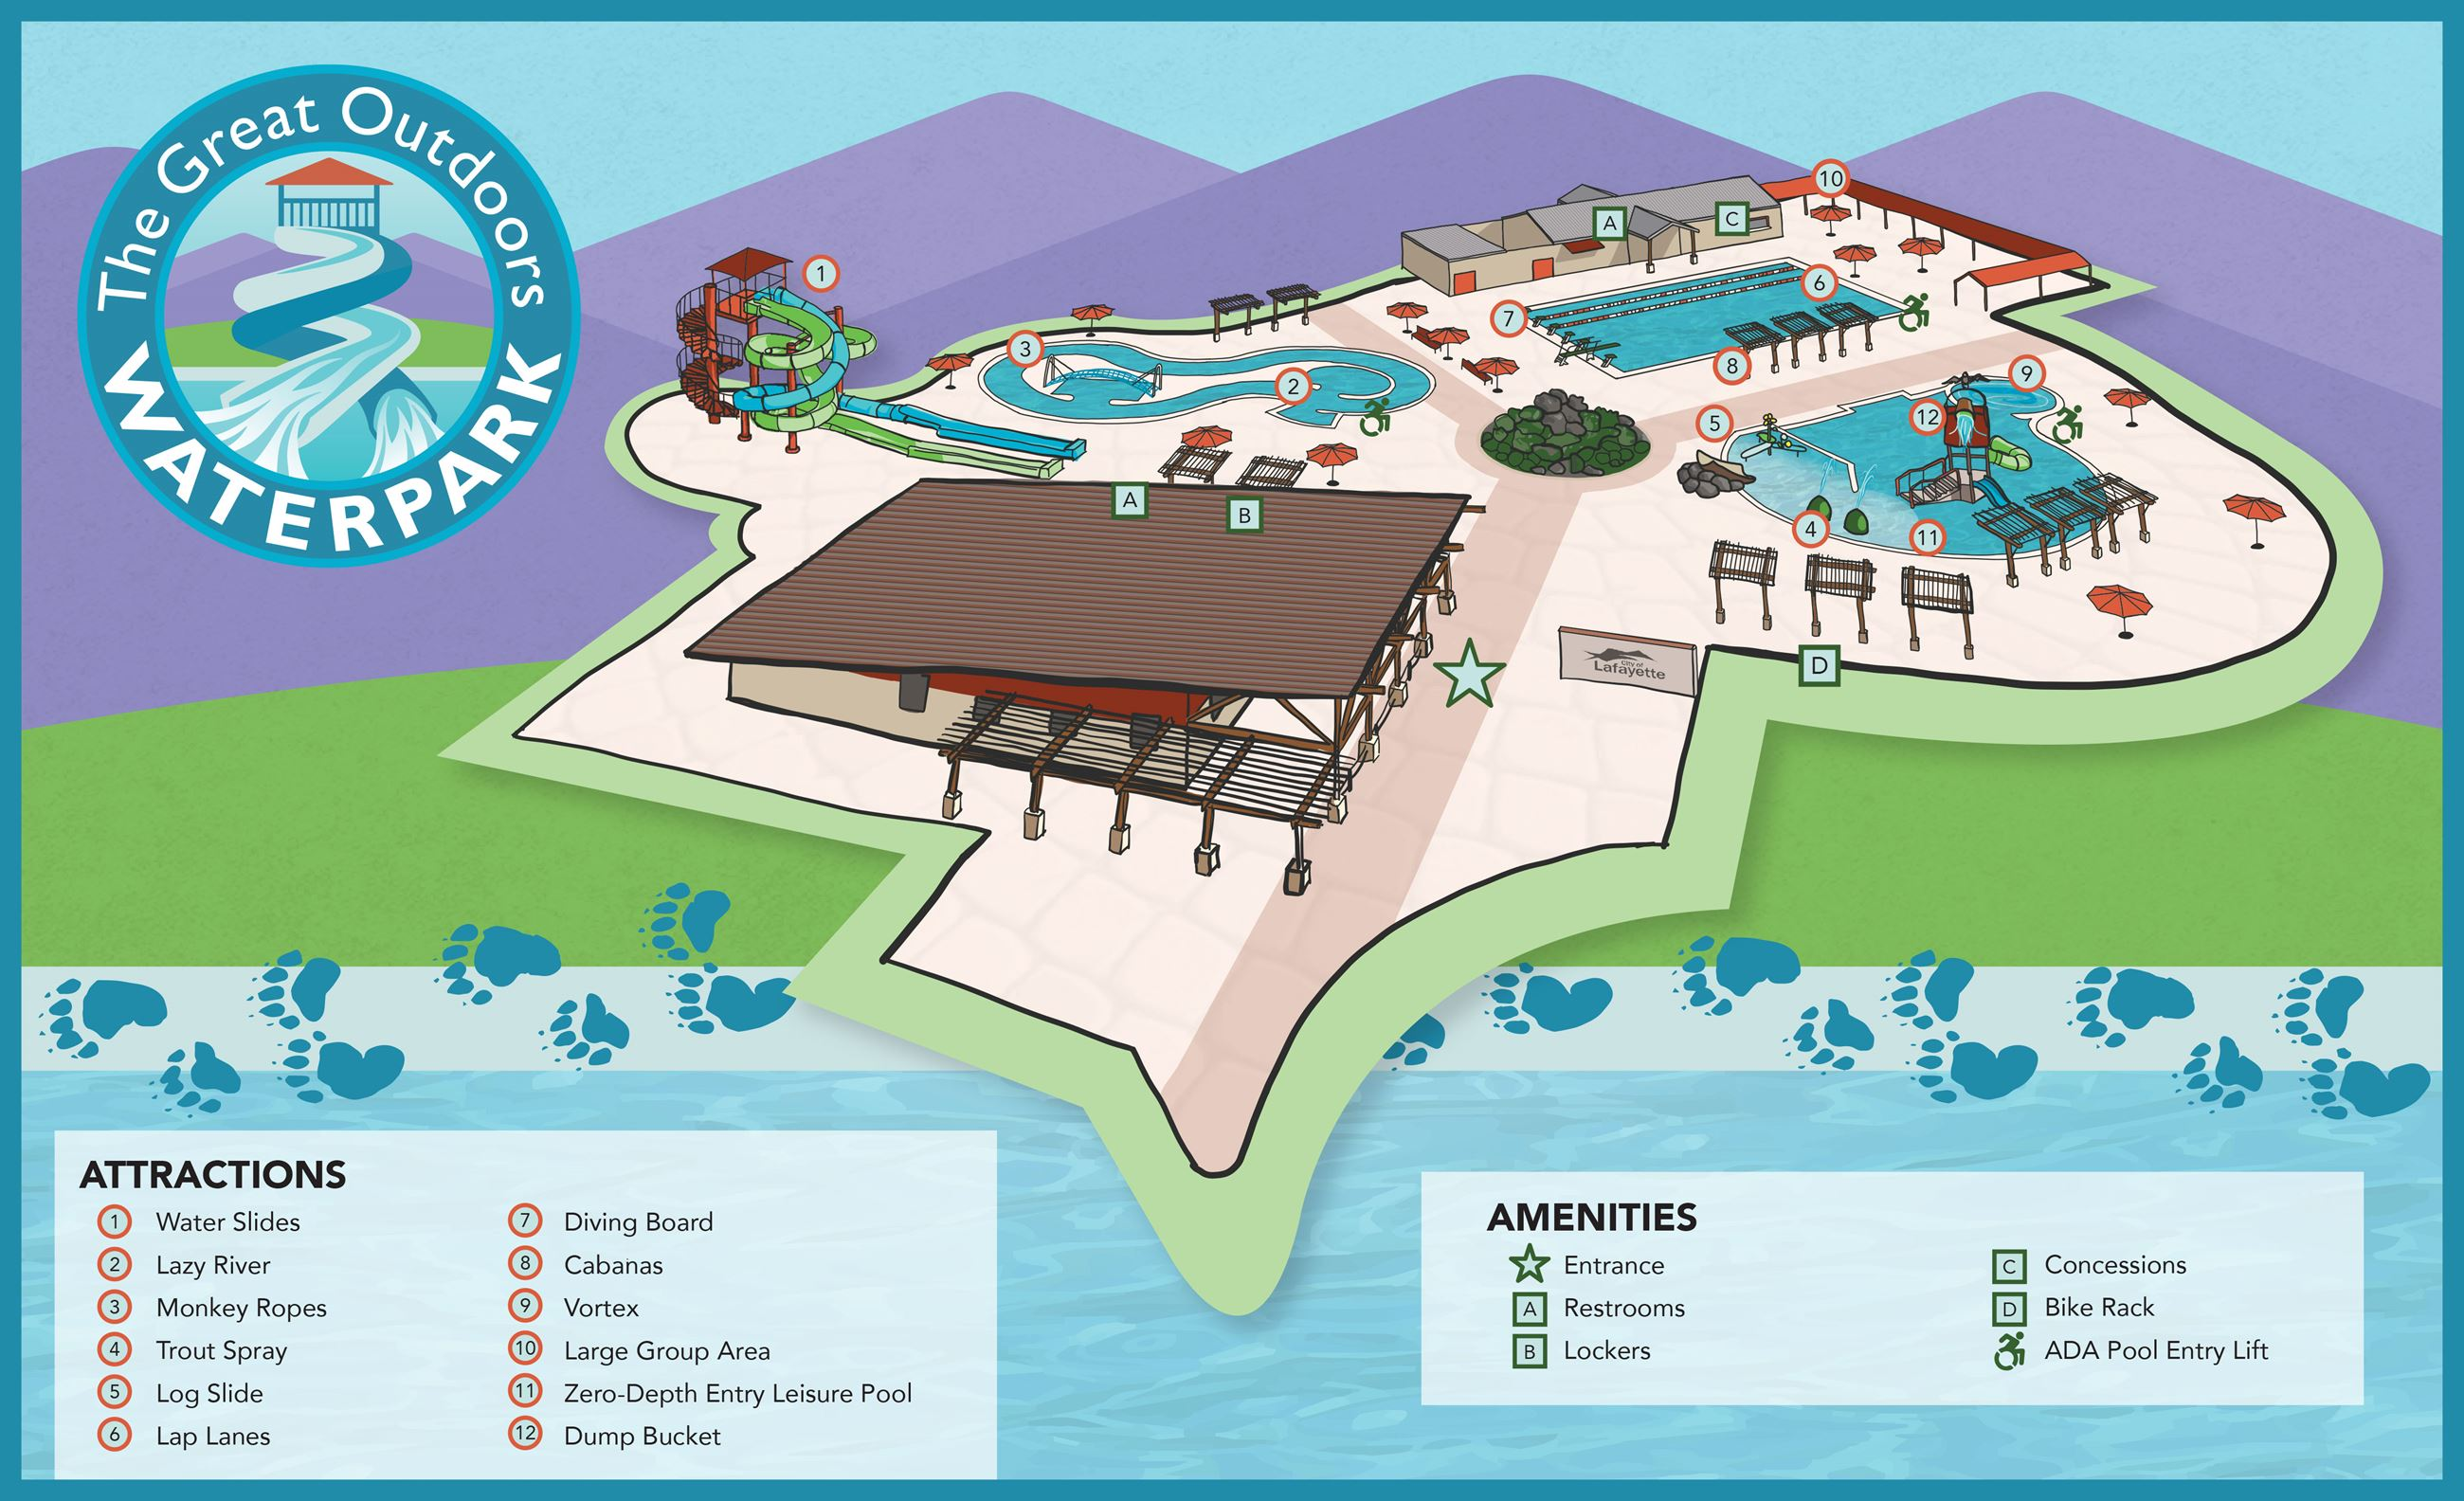 Map of the Great Outdoors Waterpark